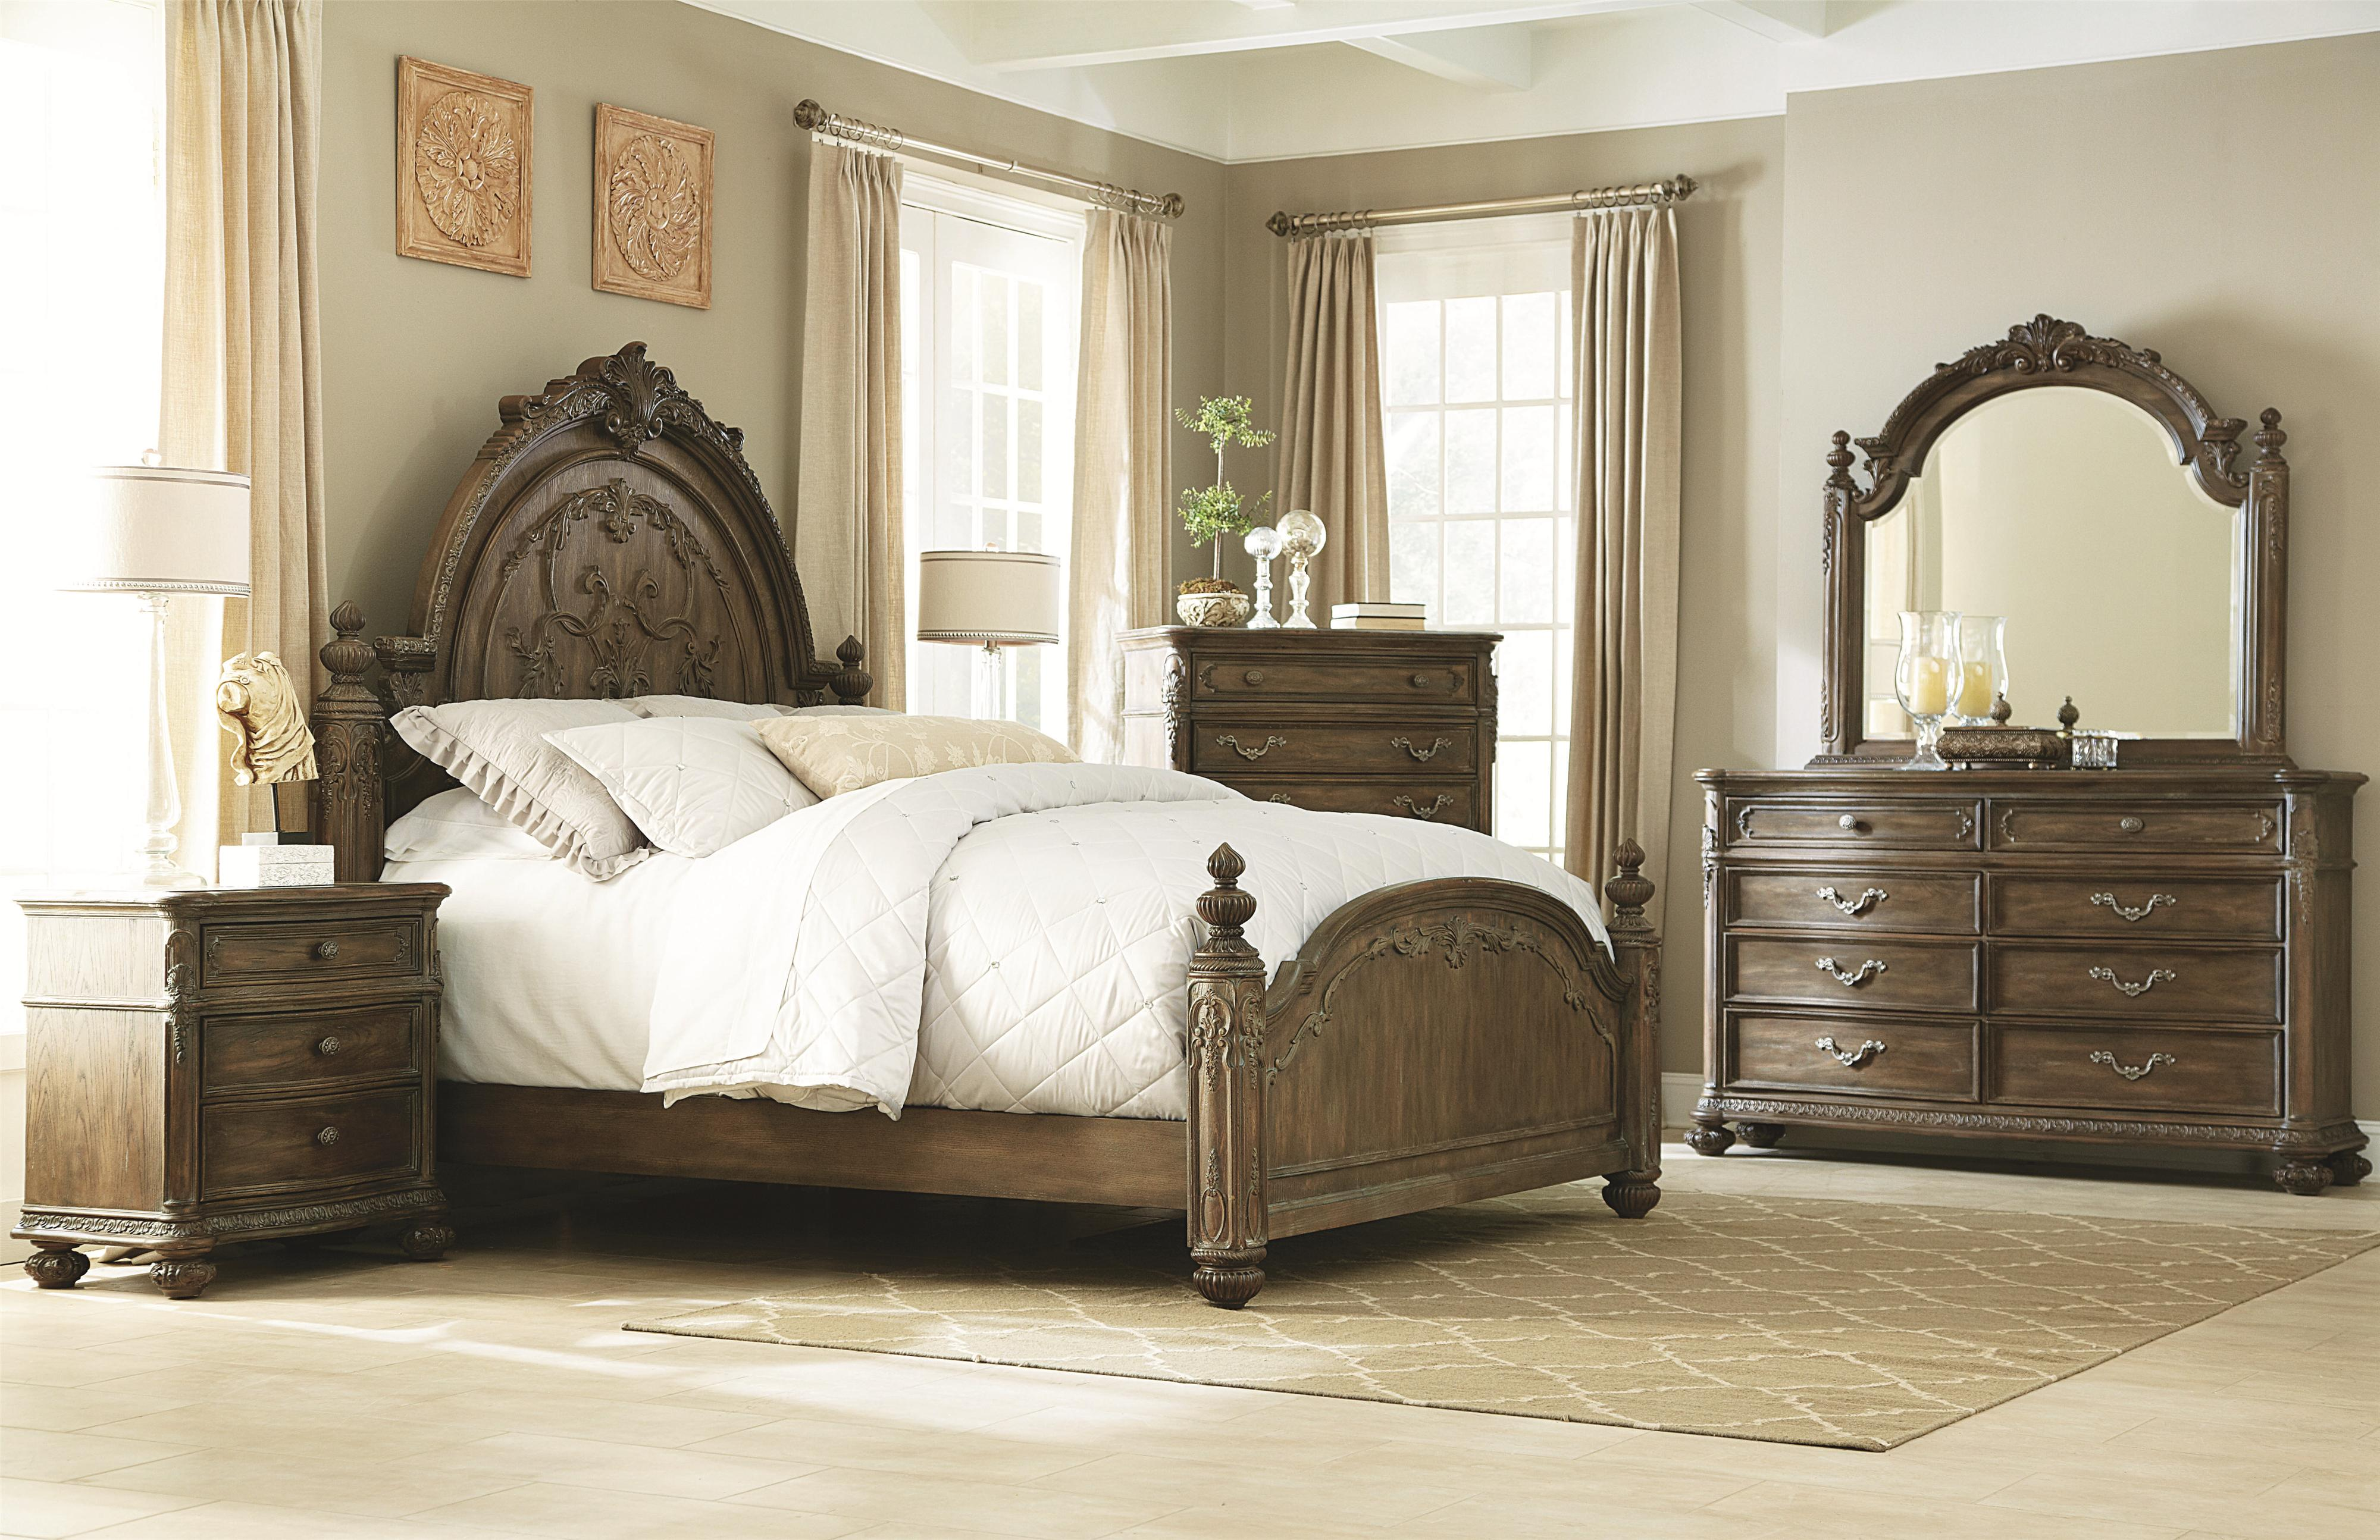 Jessica Mcclintock Home The Boutique Collection 217b By American Drew Hudson S Furniture